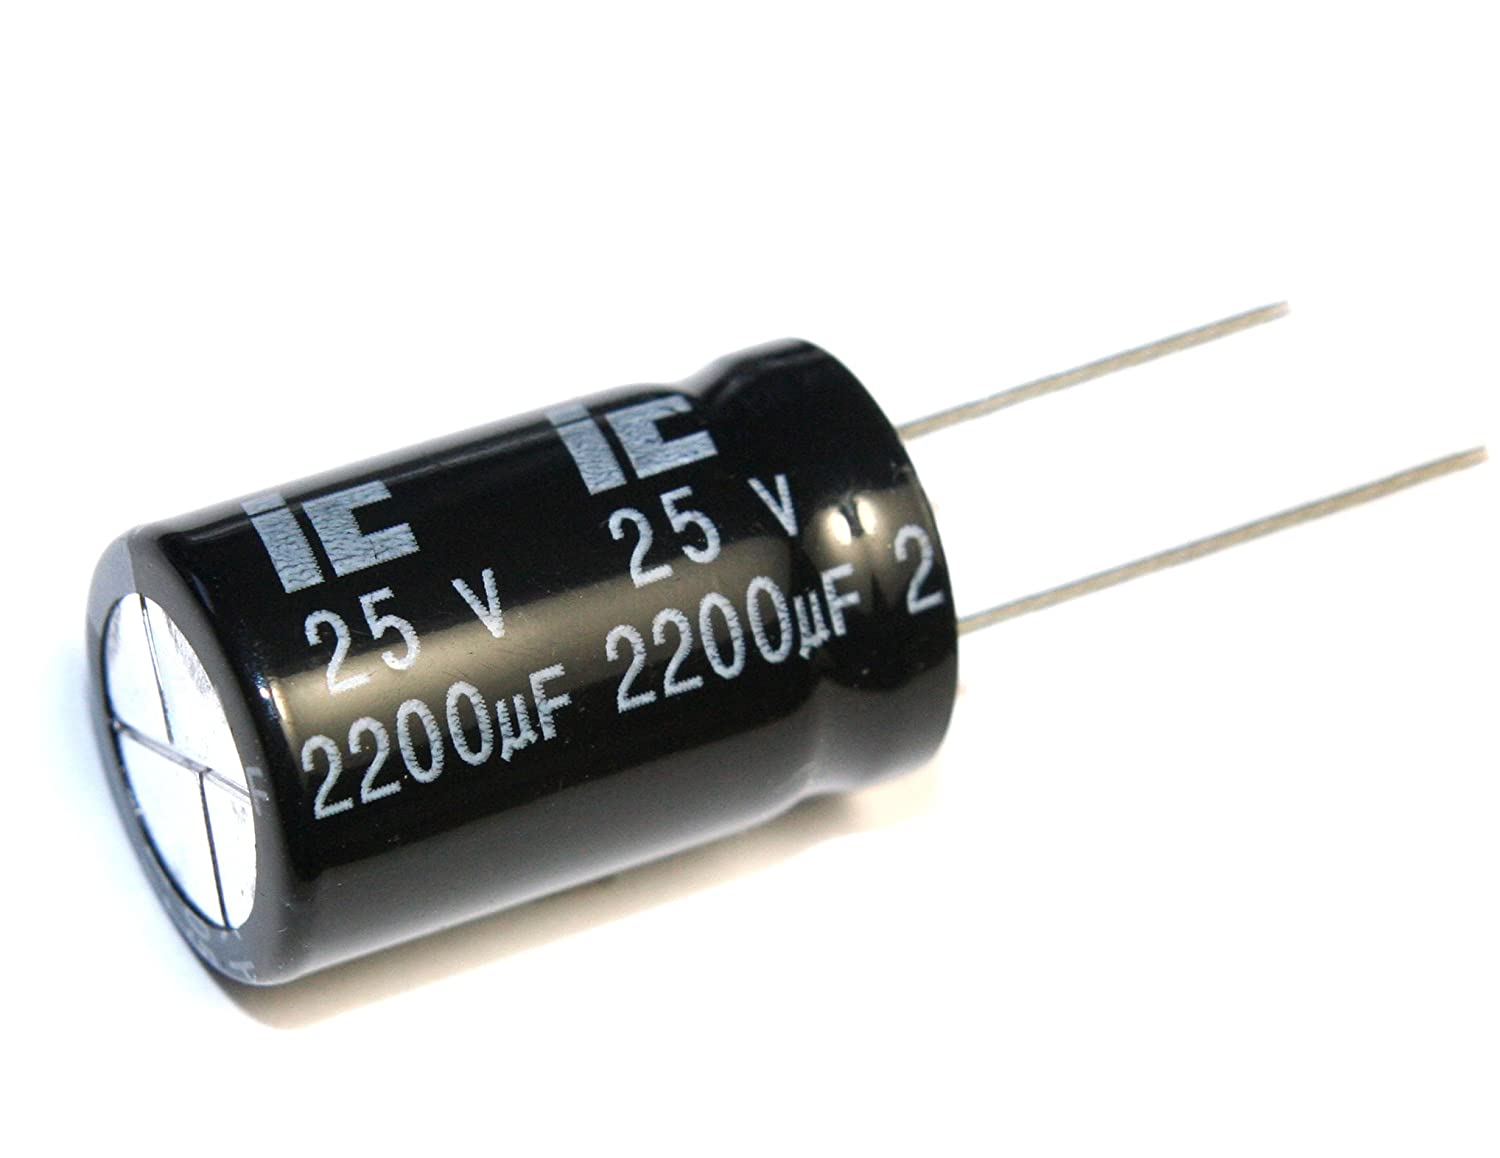 ILLINOIS CAPACITOR Electrolytic 1500UF 50V 20/% 105 °C  **NEW**  Qty.2